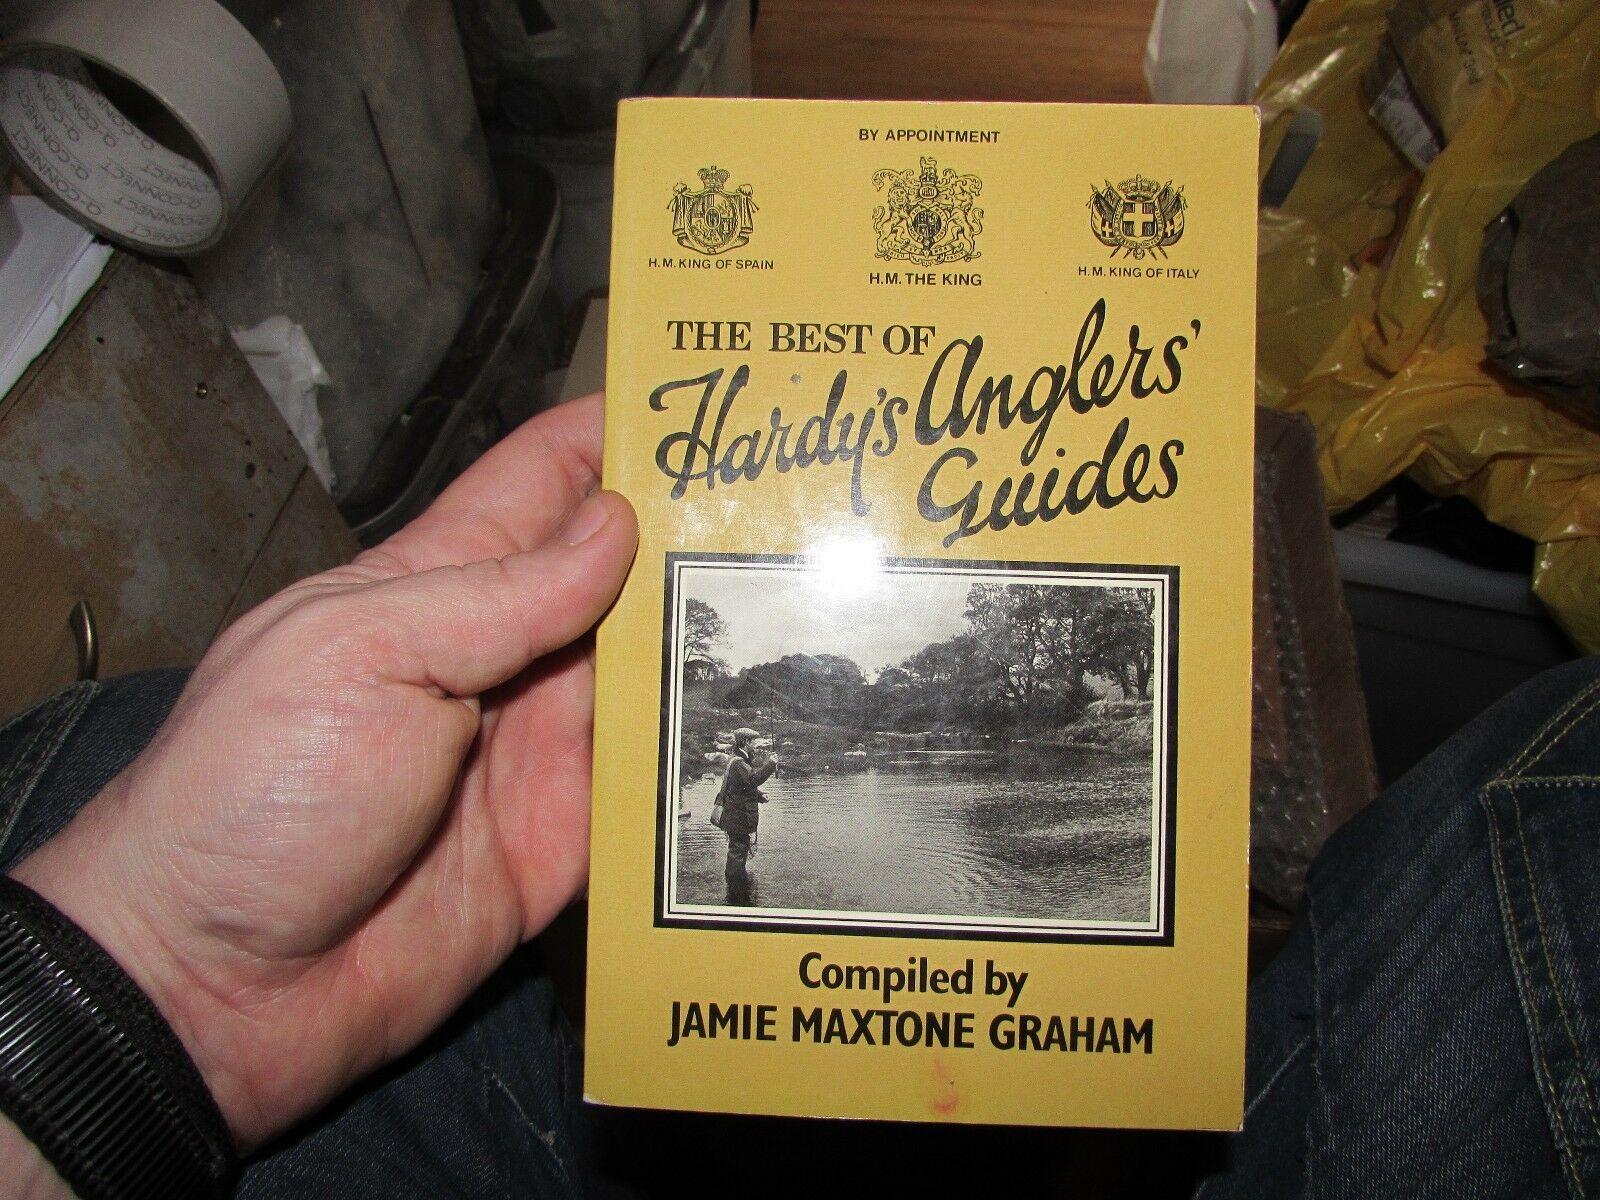 Best of Hardys anglers guides jamie maxtone graham vintage rod reel lures book .